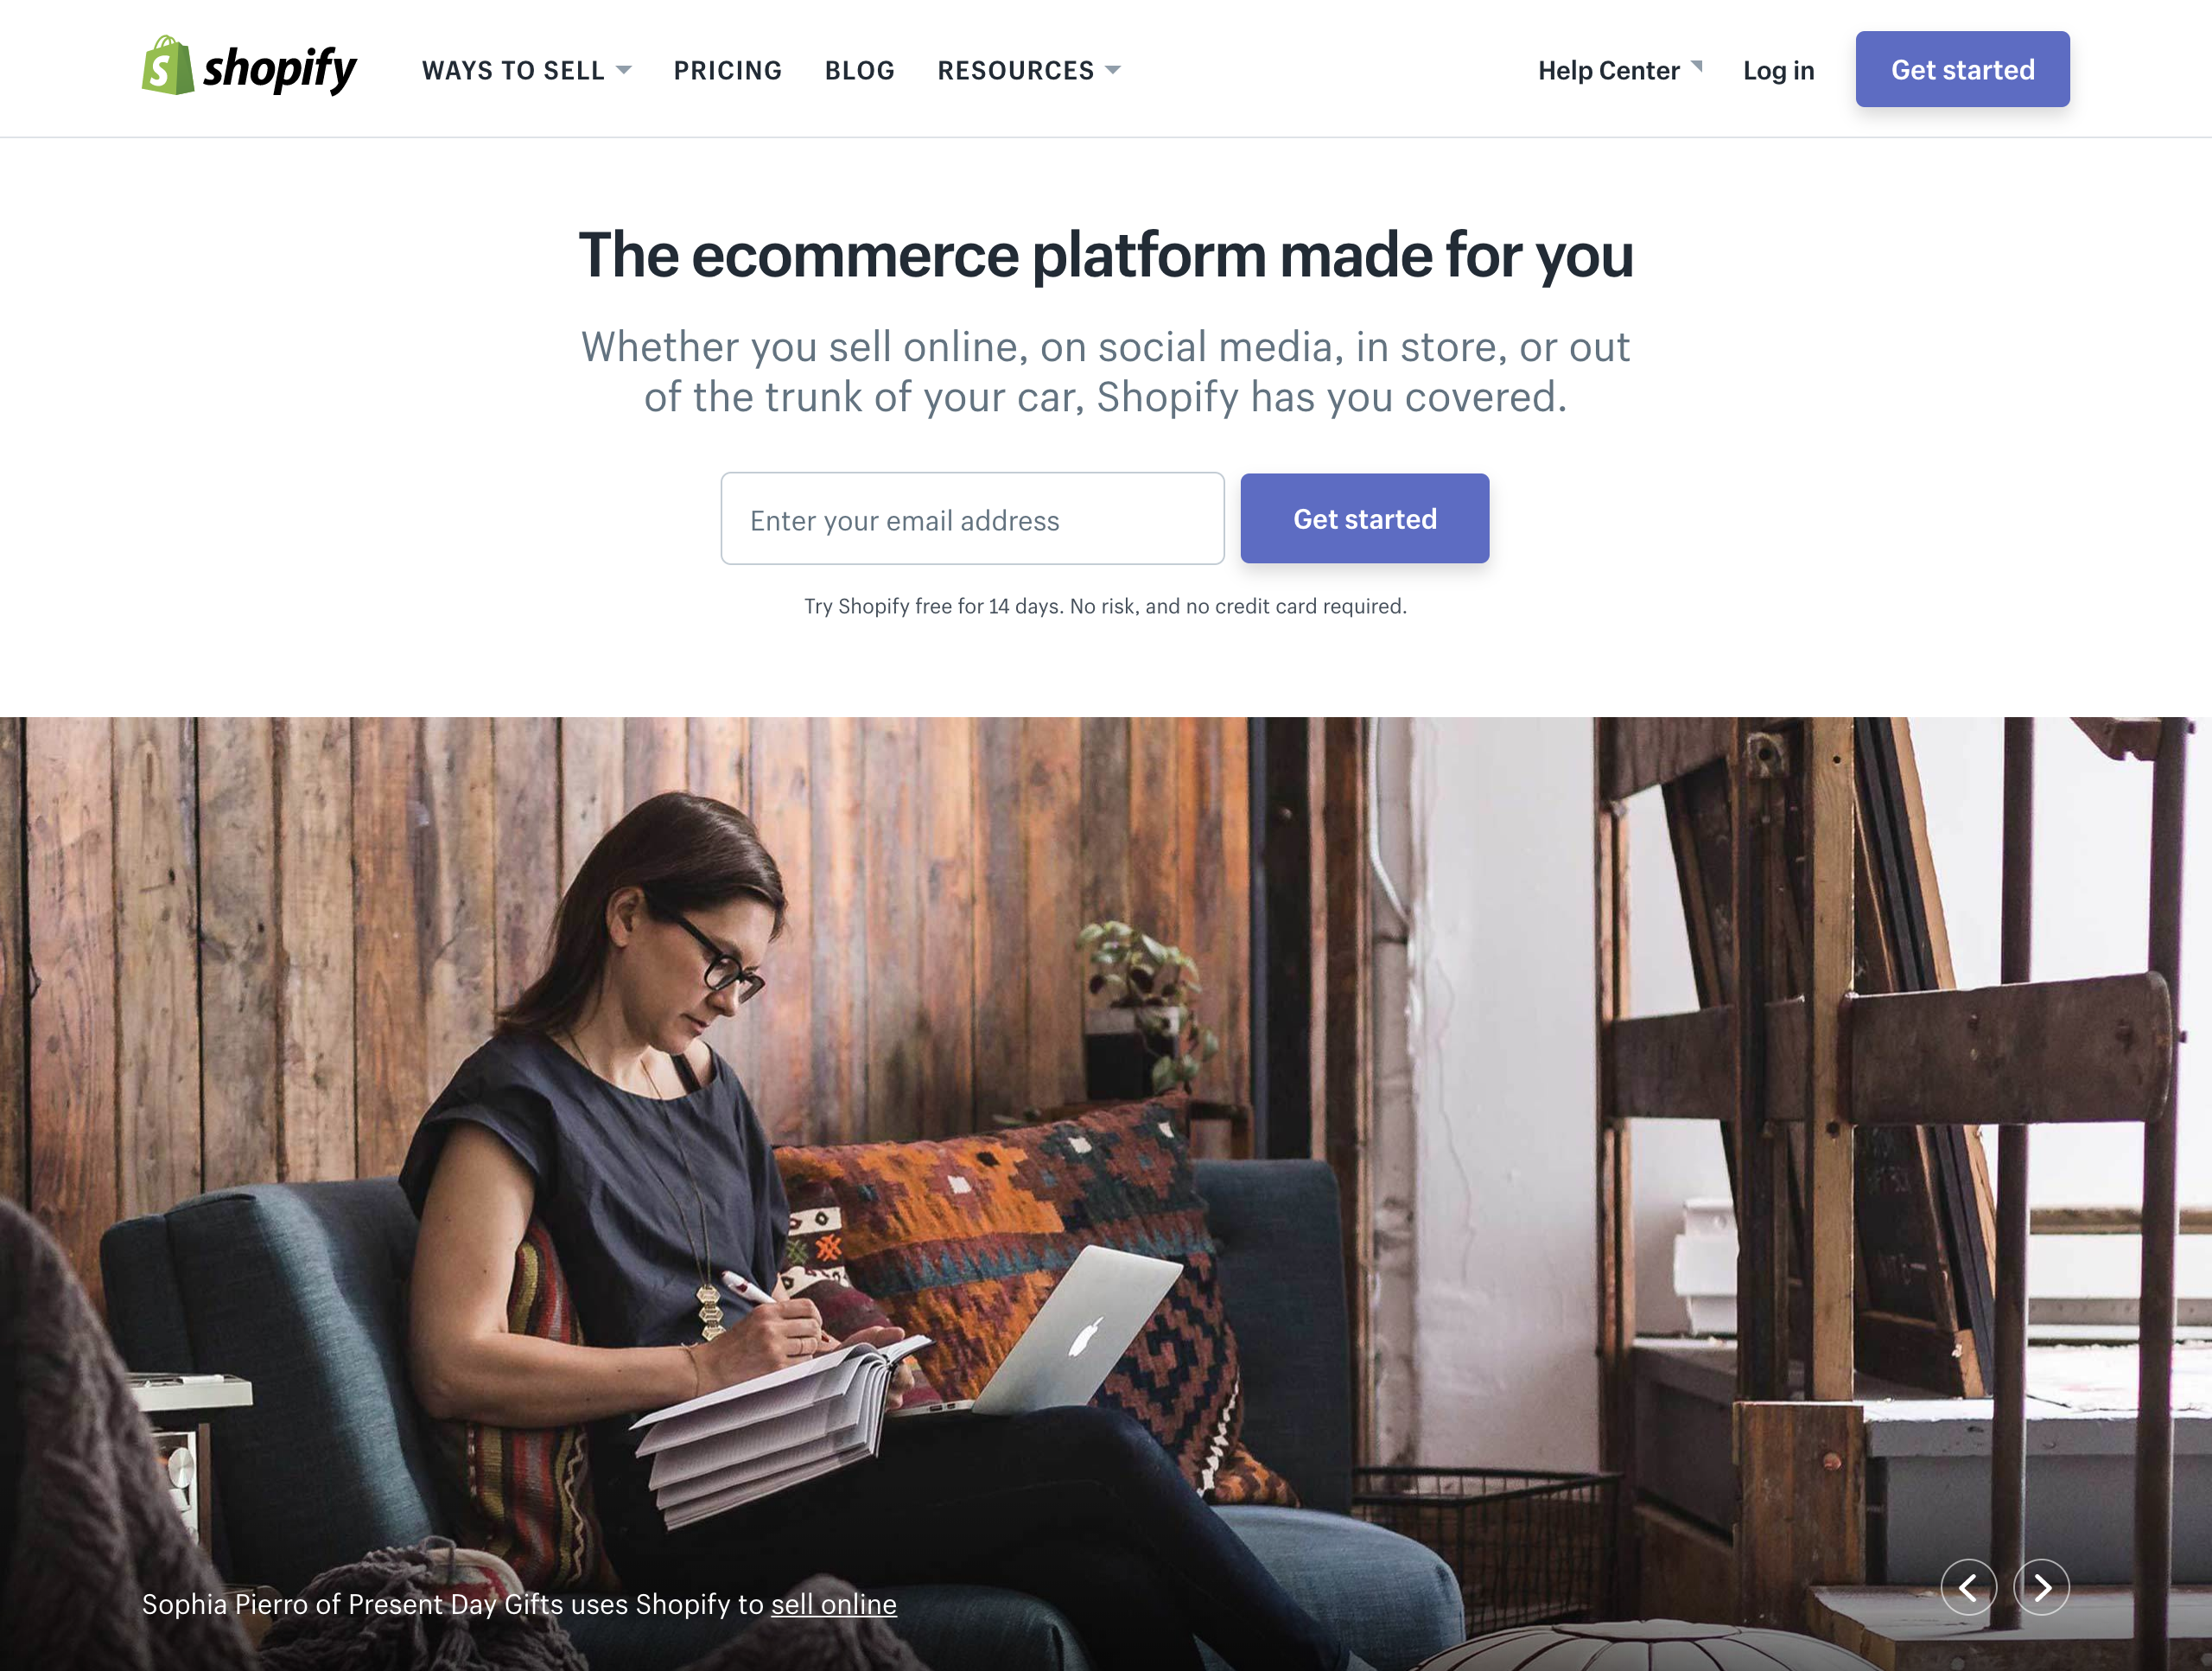 shopify ecommerce marketing